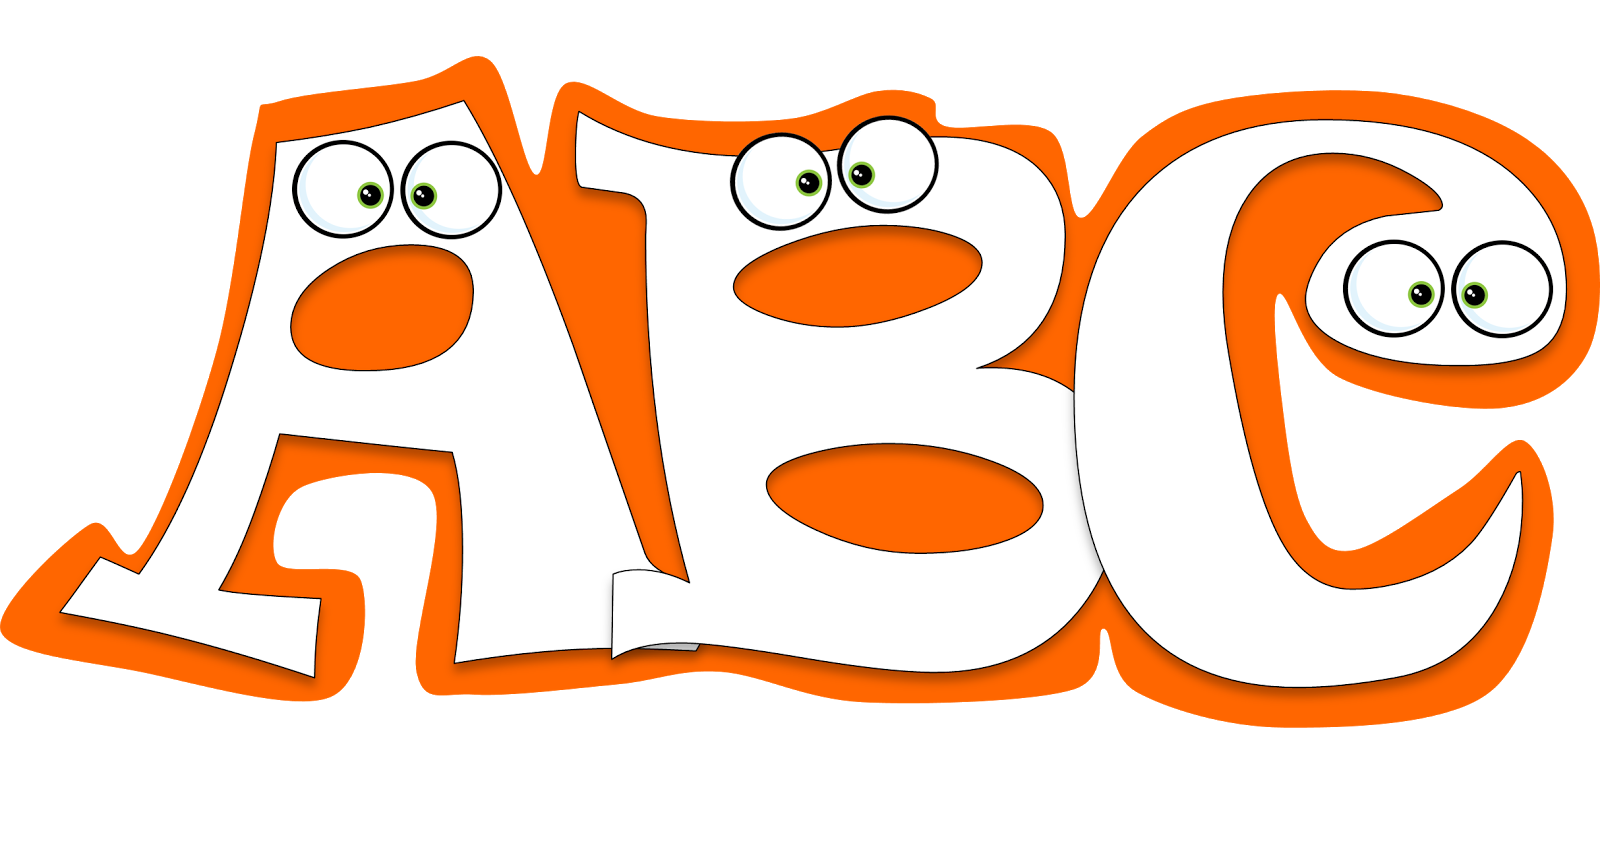 Abc clipart lettersclip. Free alphabet at getdrawings